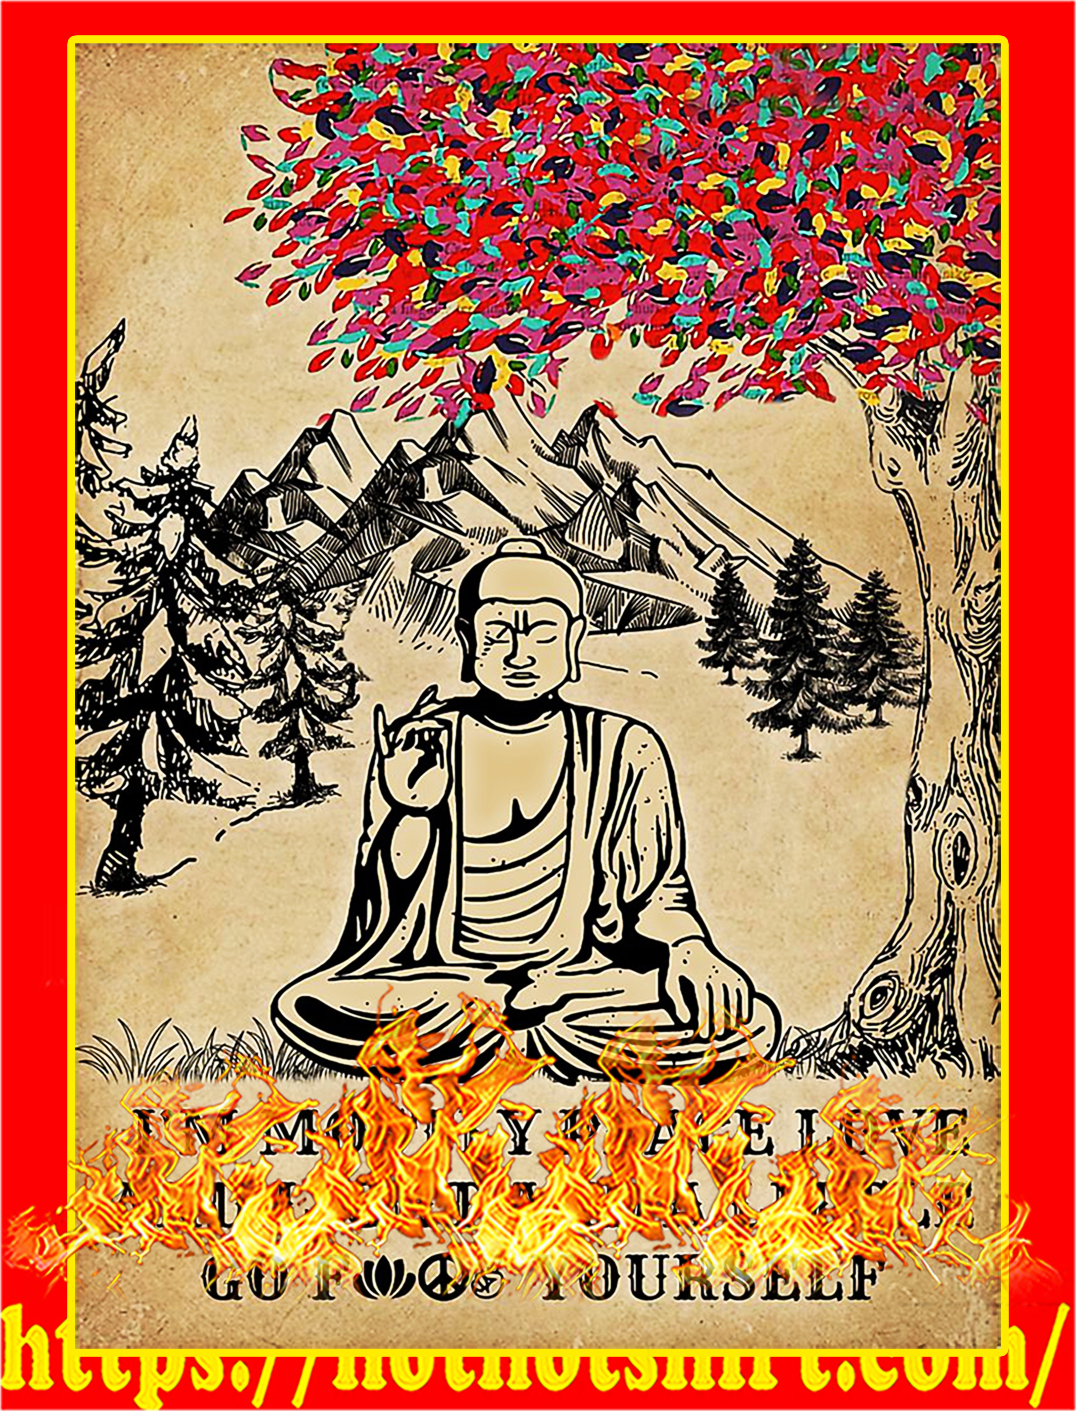 Buddha I'm mostly peace love and light poster - A2